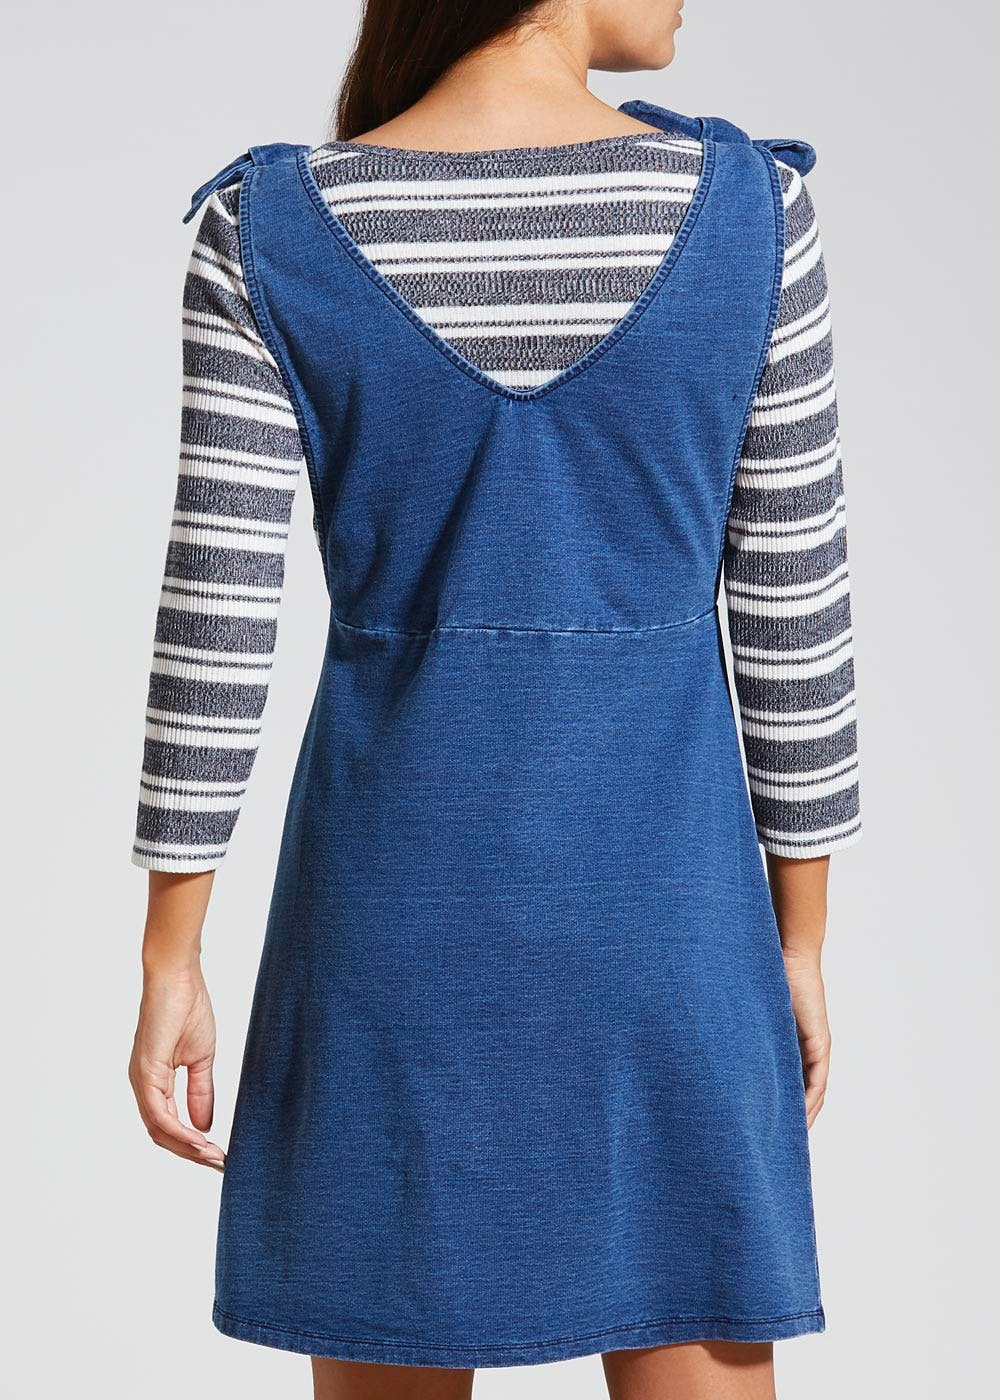 2 in 1 Denim Pinafore Dress – Midwash – Matalan